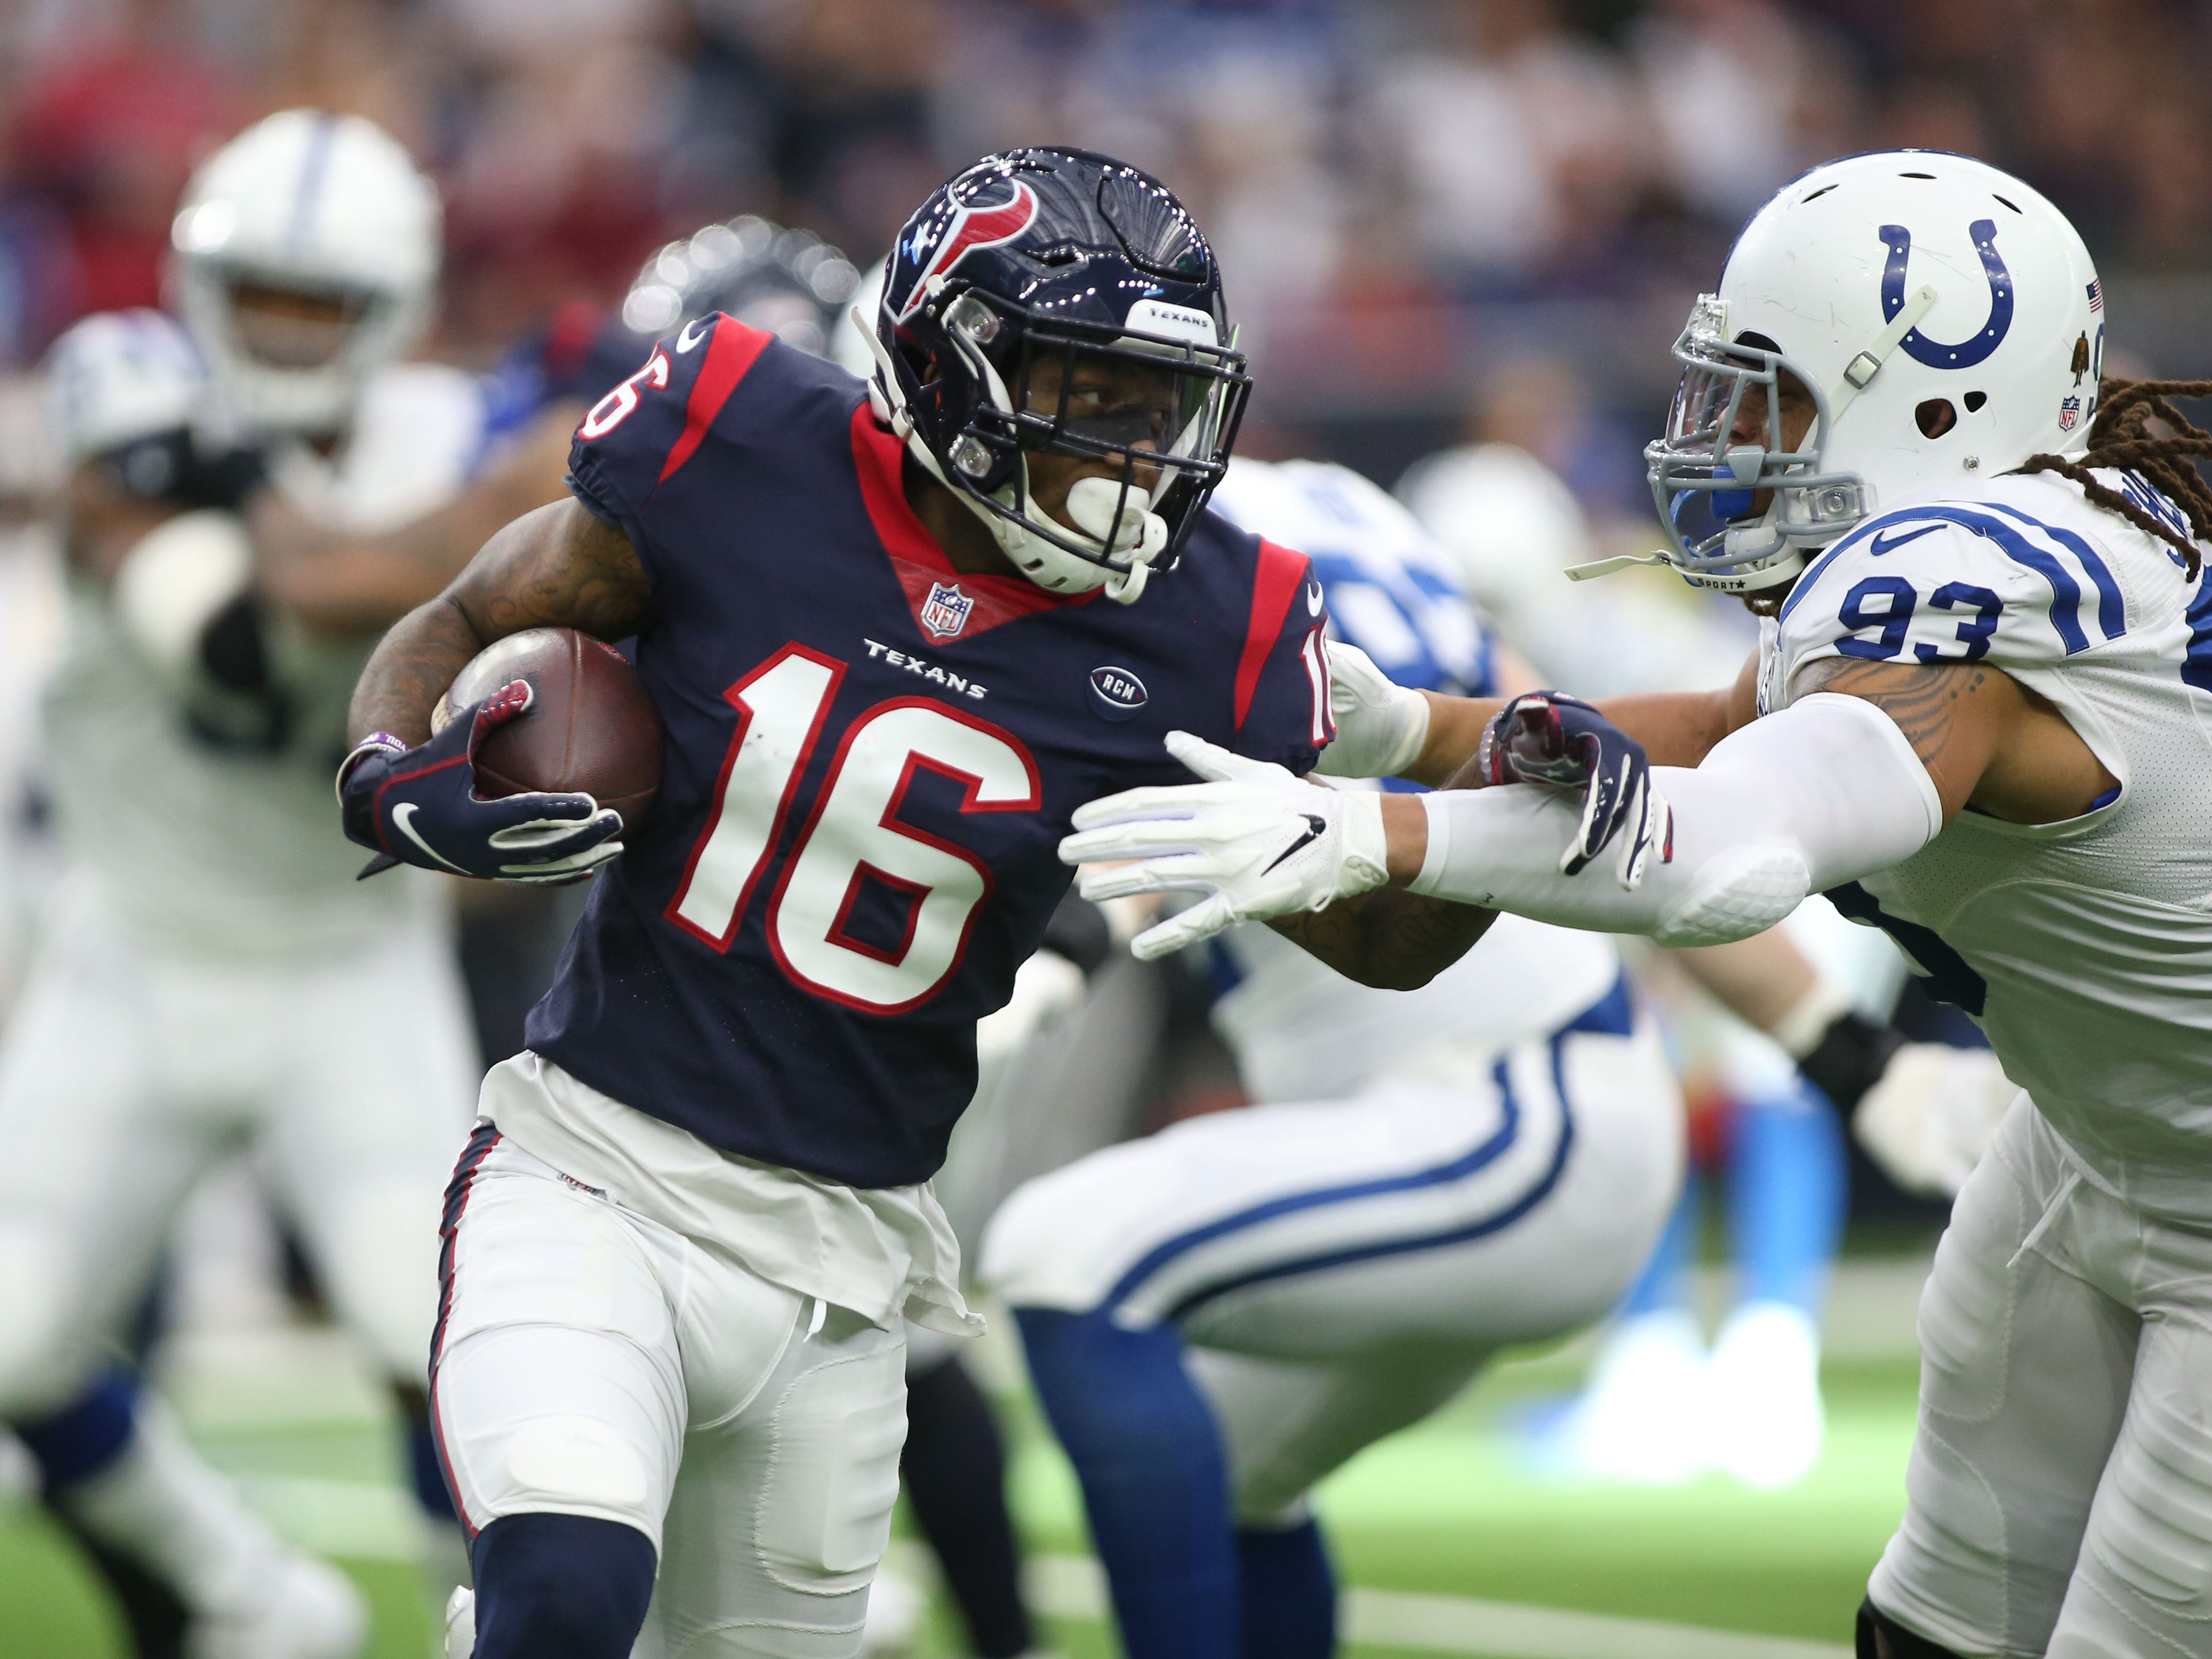 Houston Texans wide receiver Keke Coutee (16) runs the ball against Indianapolis Colts defensive end Jabaal Sheard (93) in the first quarter in a AFC Wild Card playoff football game at NRG Stadium.